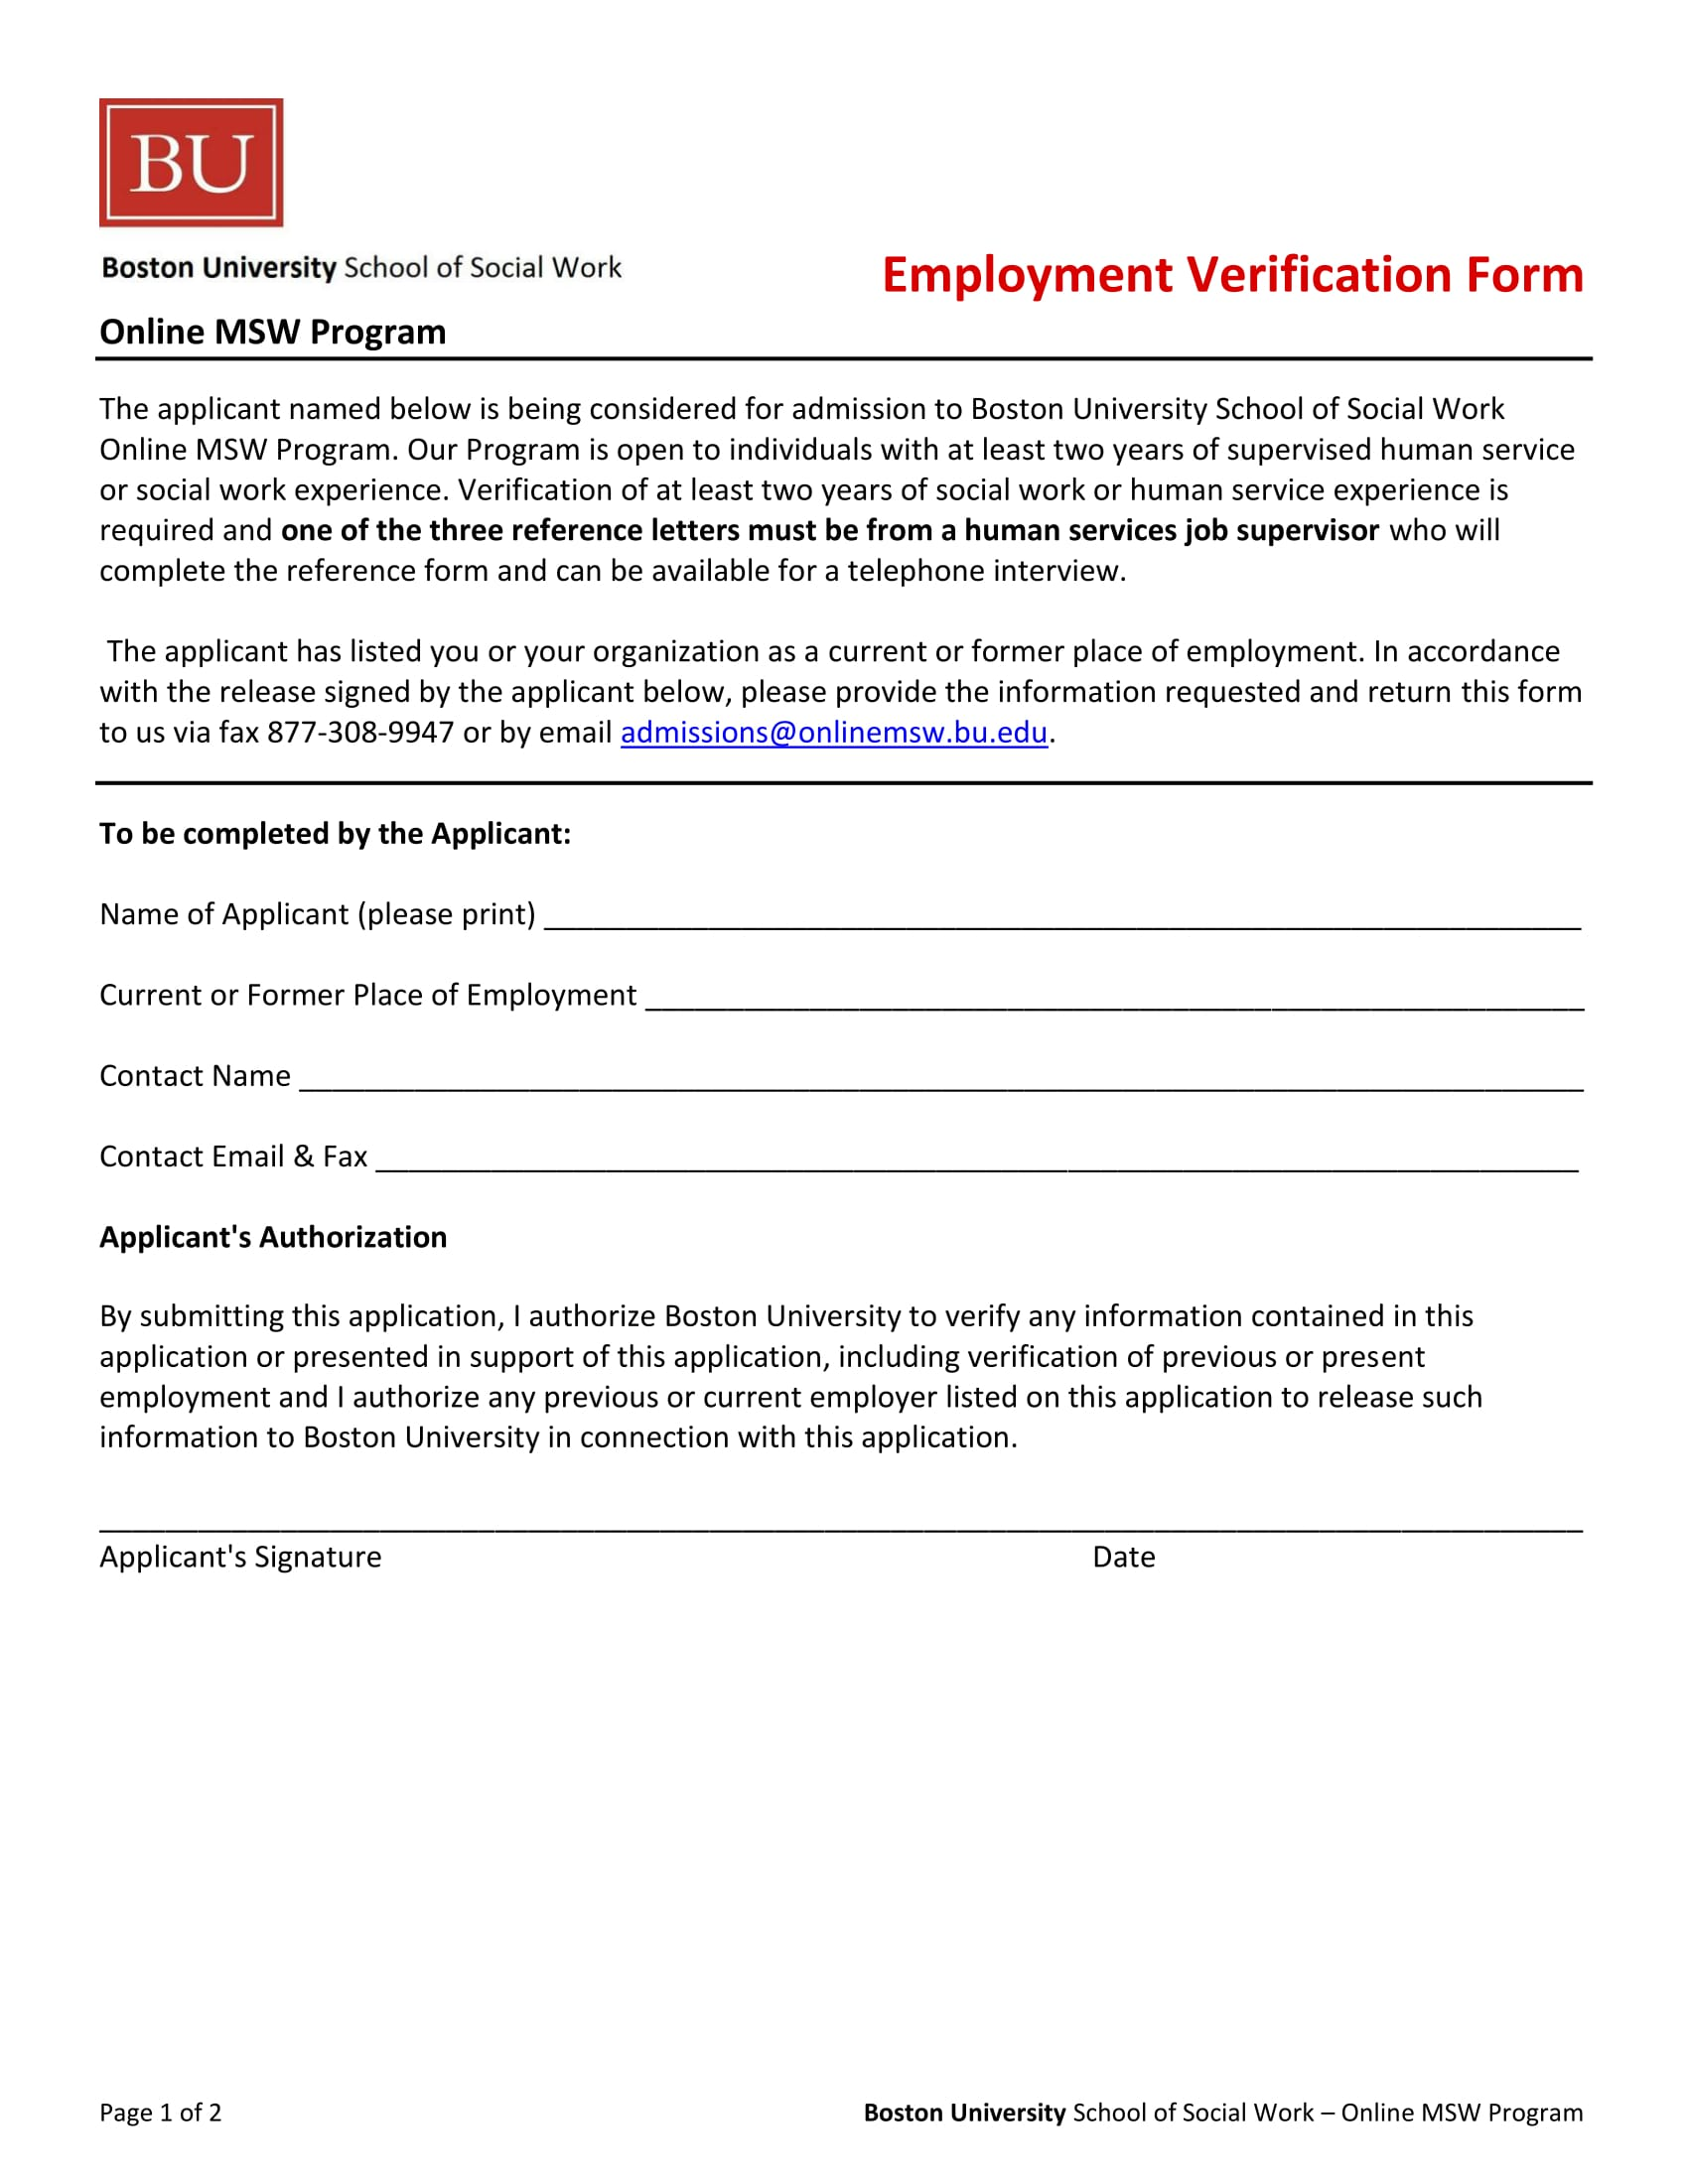 university employment verification form 1